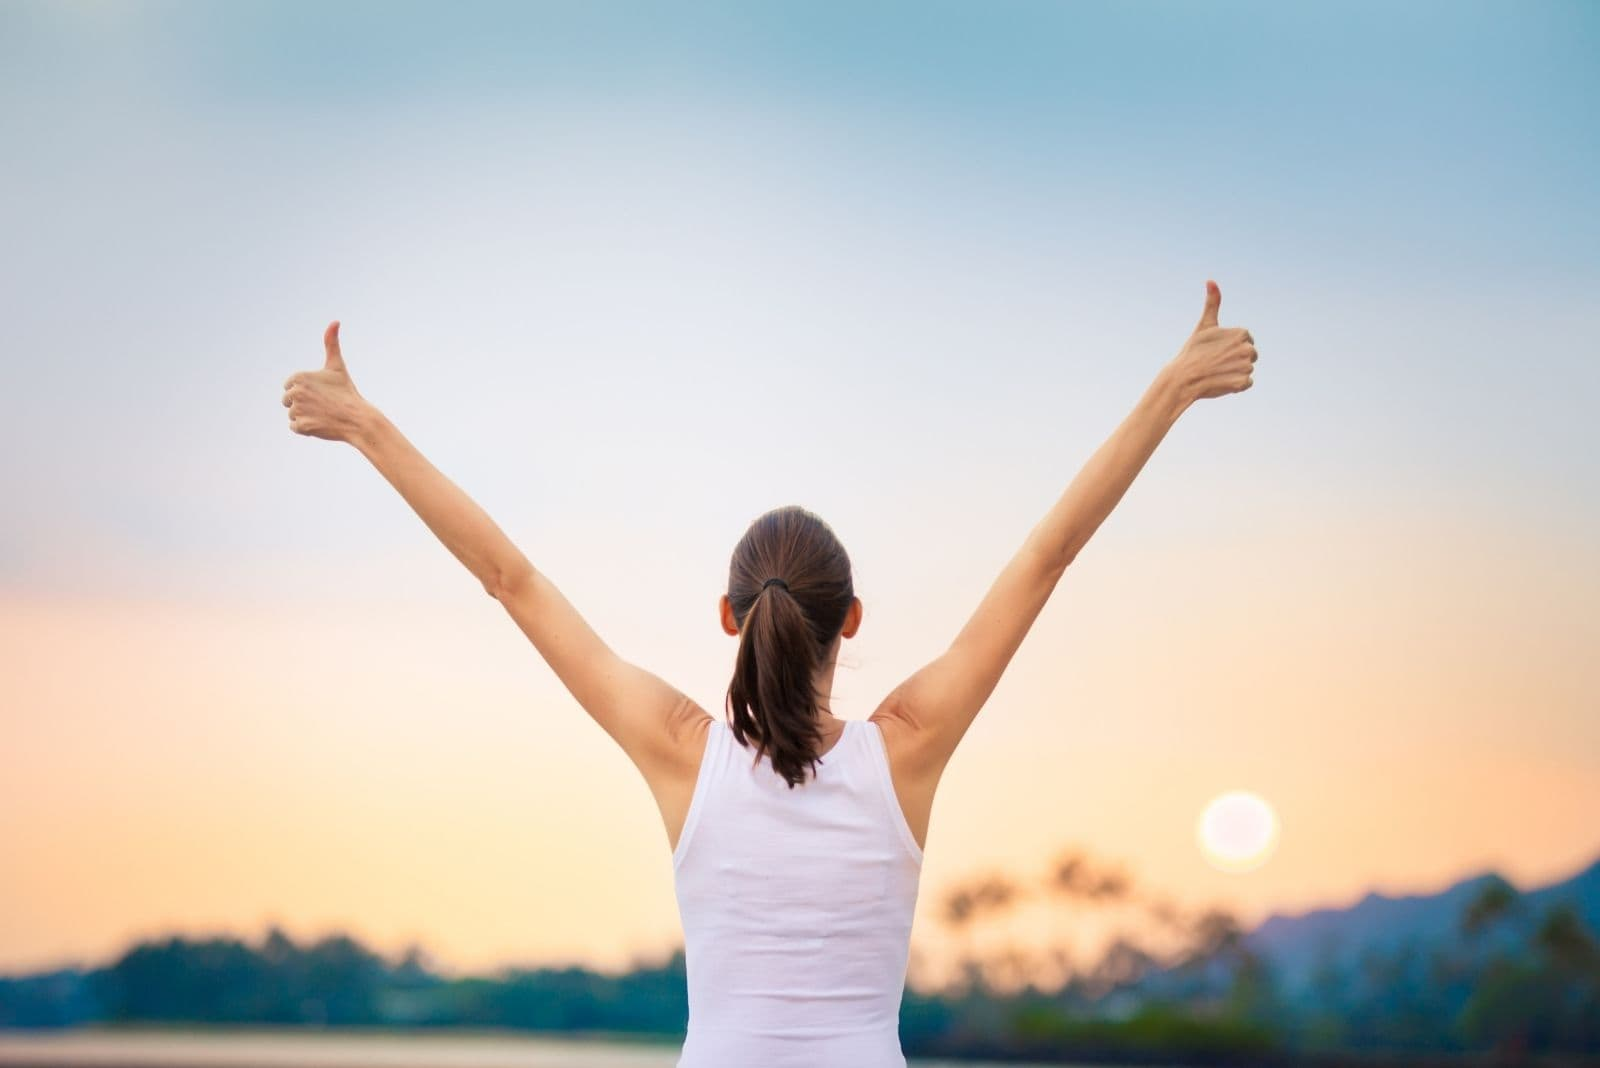 athletic woman raising her hands with thumbs up faciing the sunrise/sunset outdoors